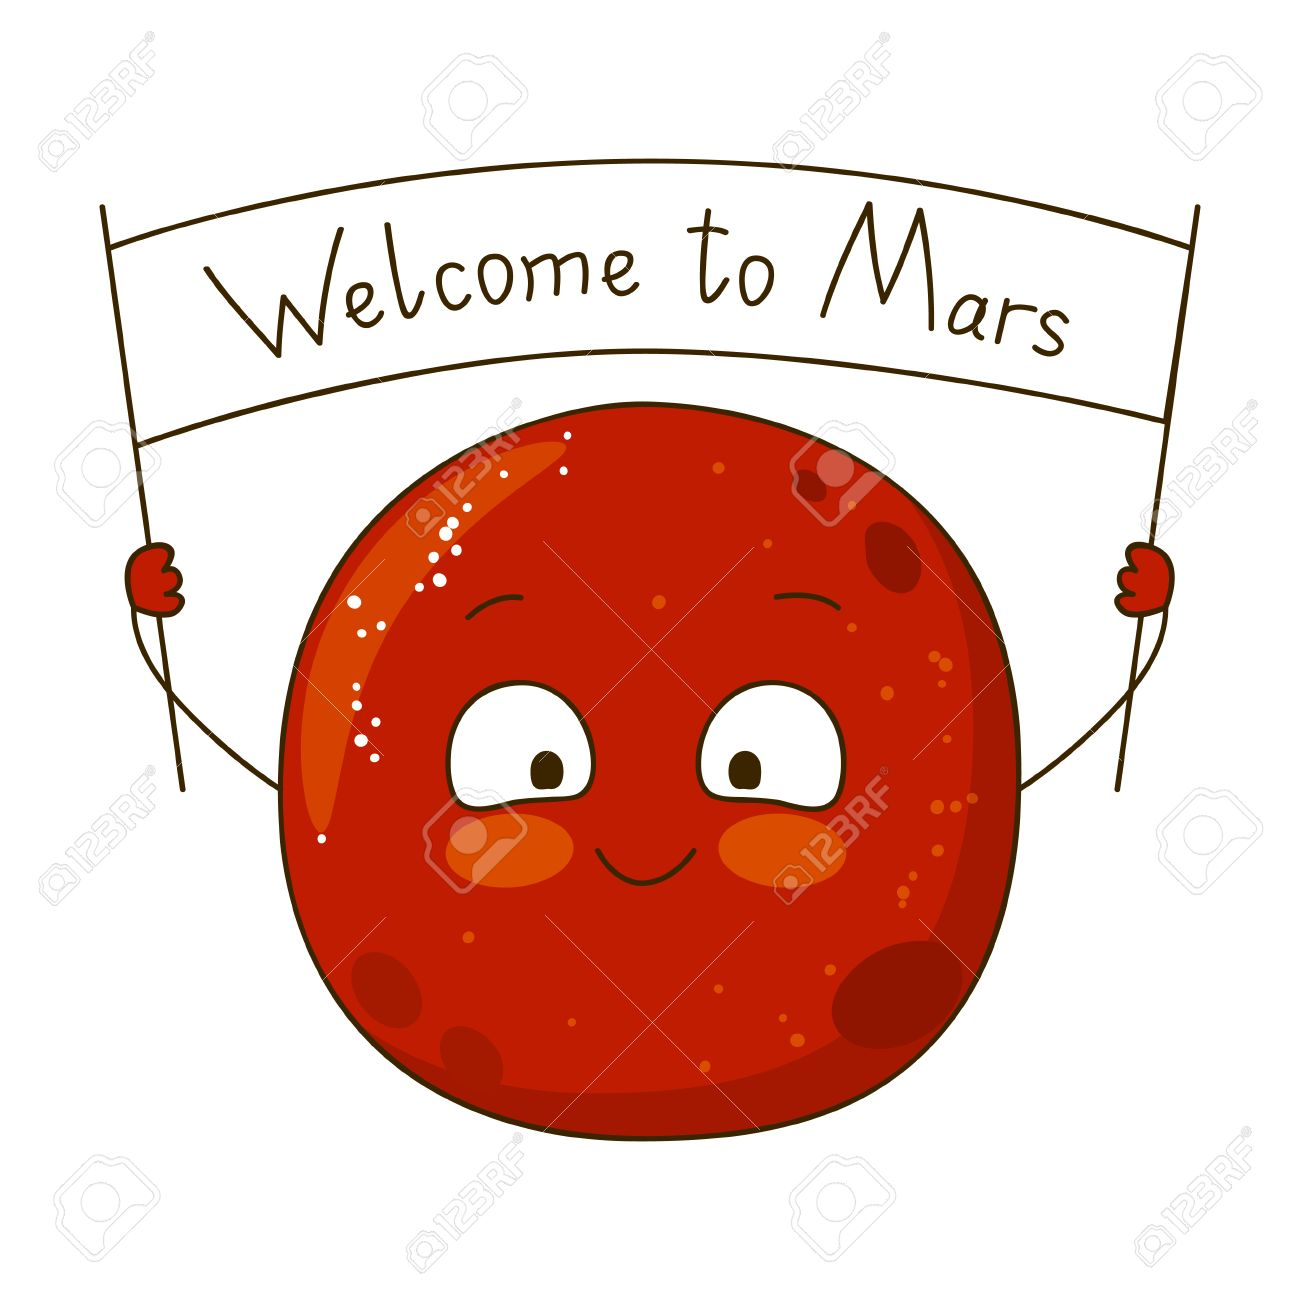 cartoon mars character isolated on white royalty free cliparts rh 123rf com mars clipart black and white planète mars clipart